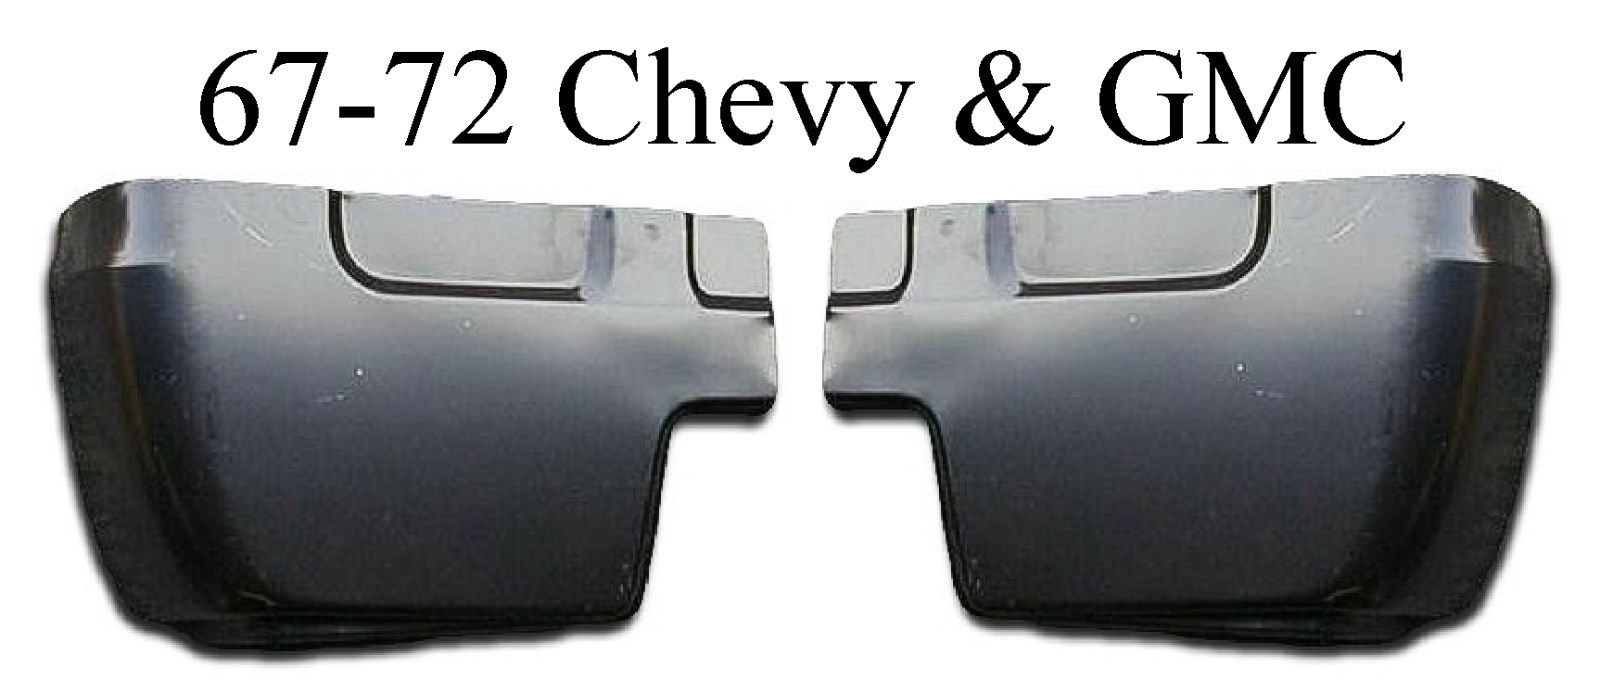 67-72 Chevy & GMC Cab Corner 2Pc Set